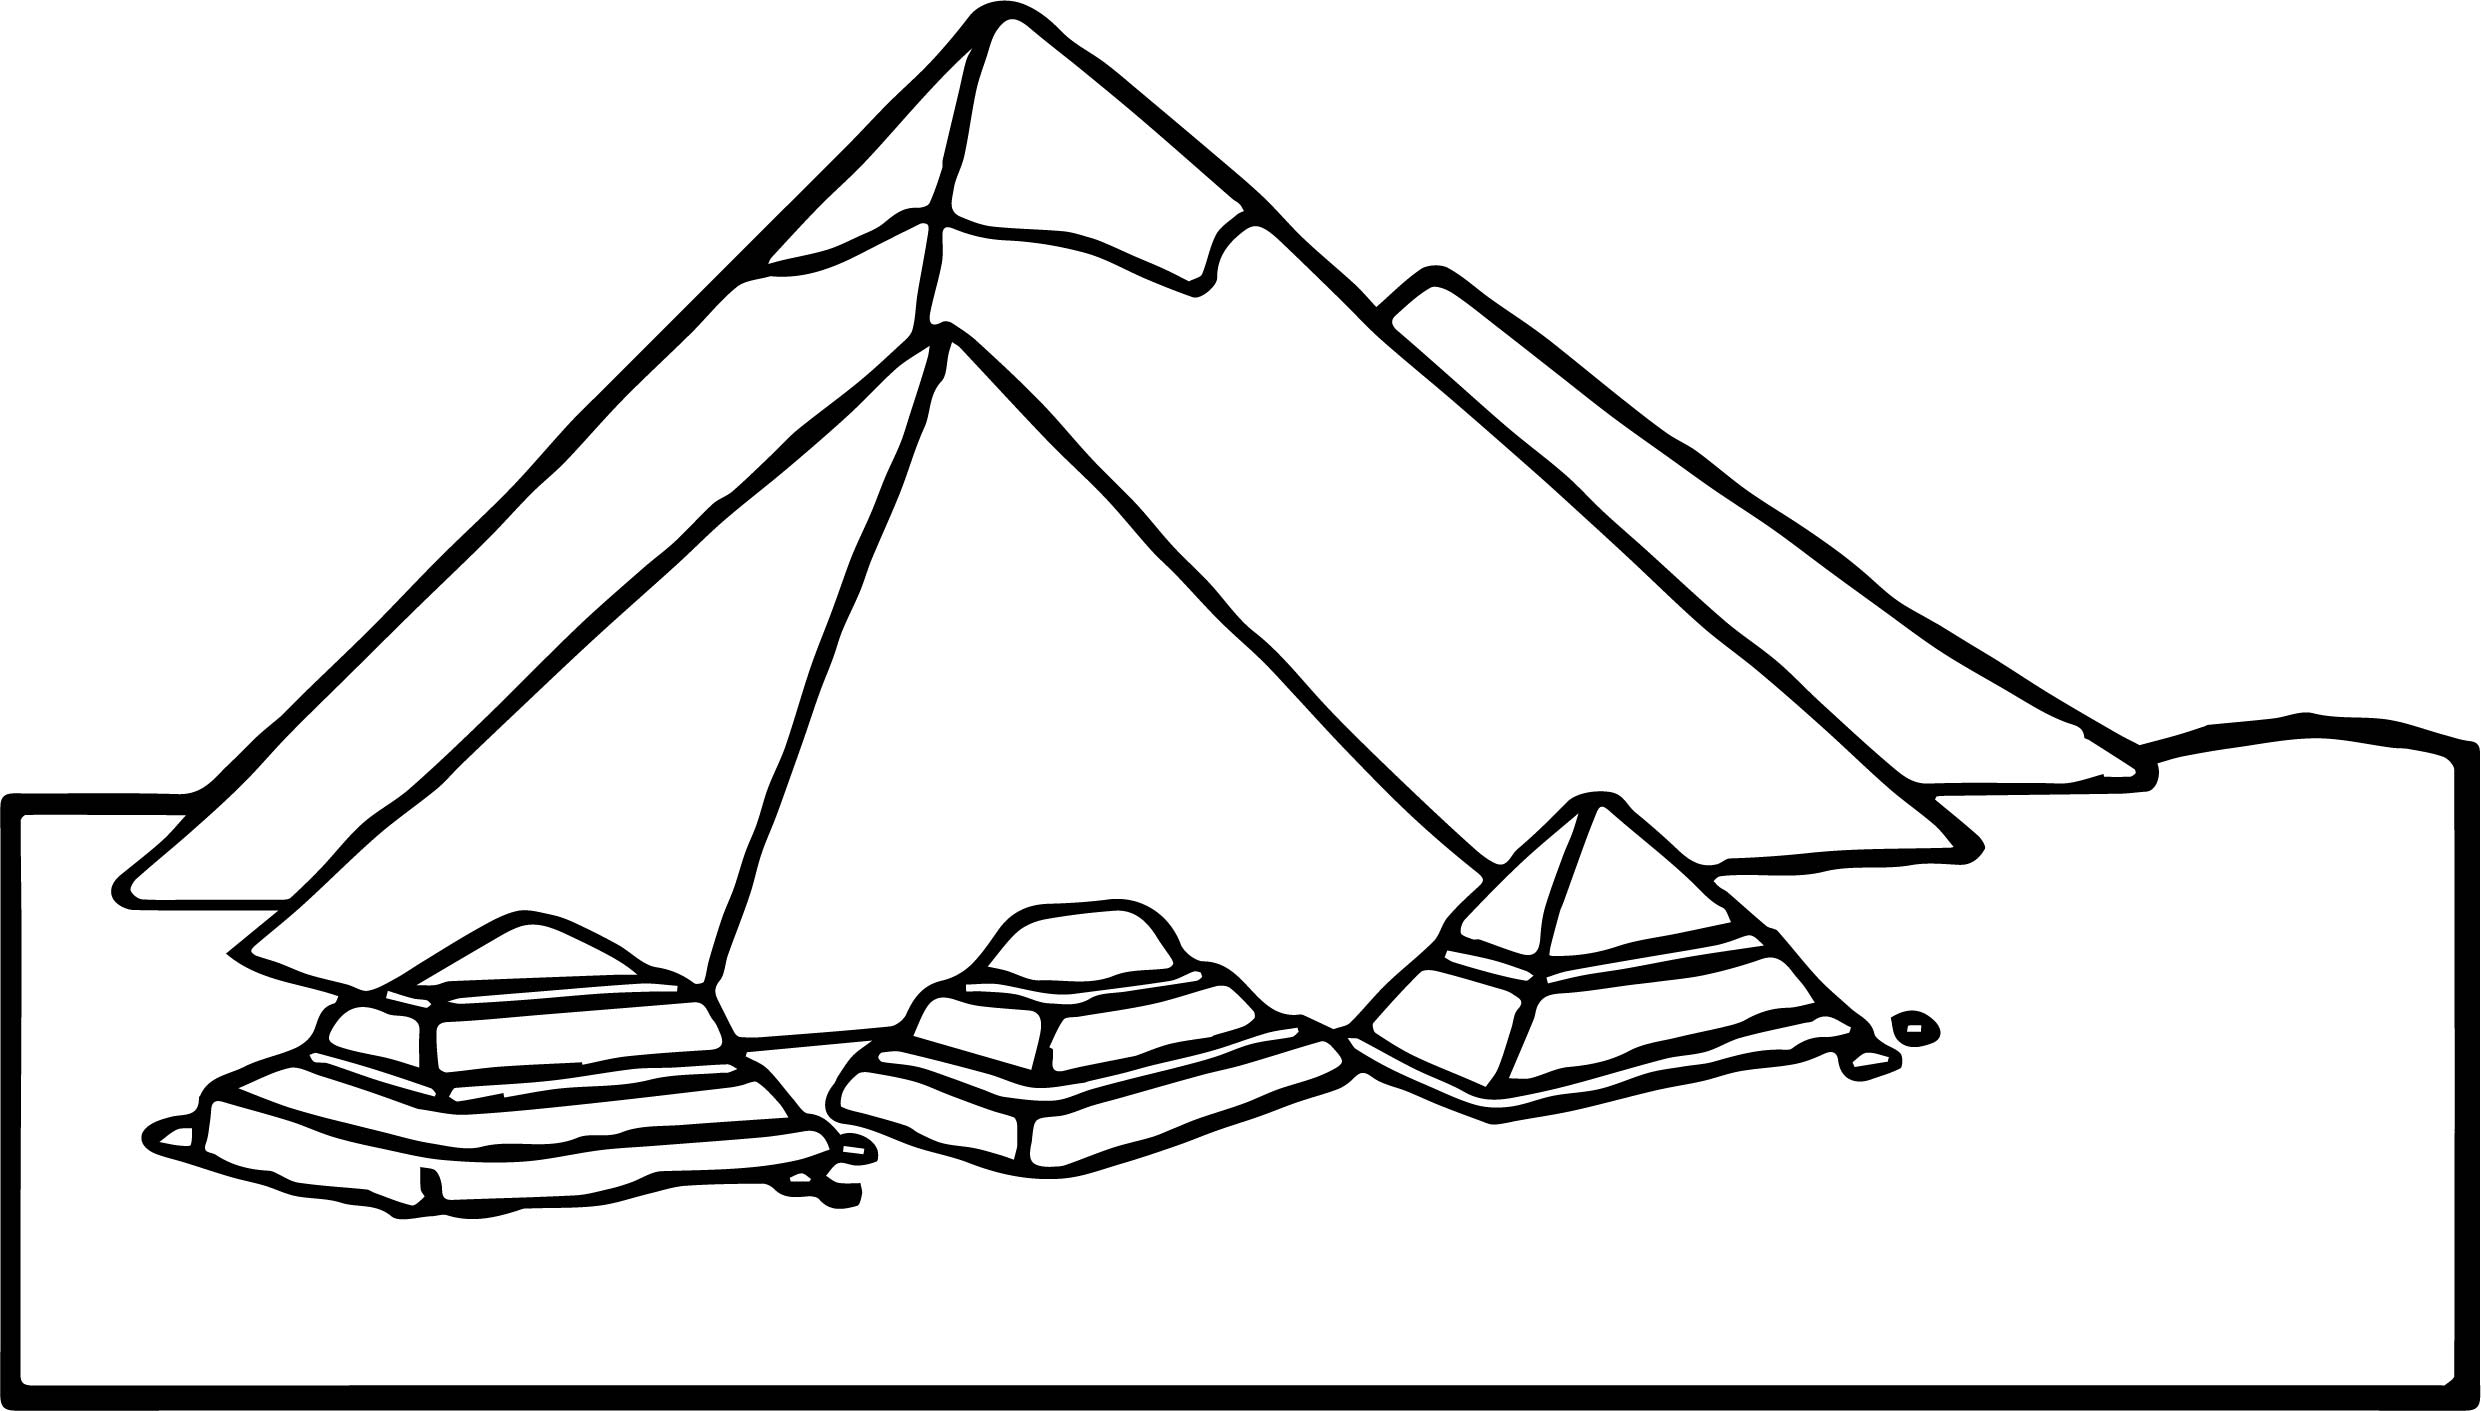 ancient egypt coloring pages - new ancient egypt pyramid coloring page